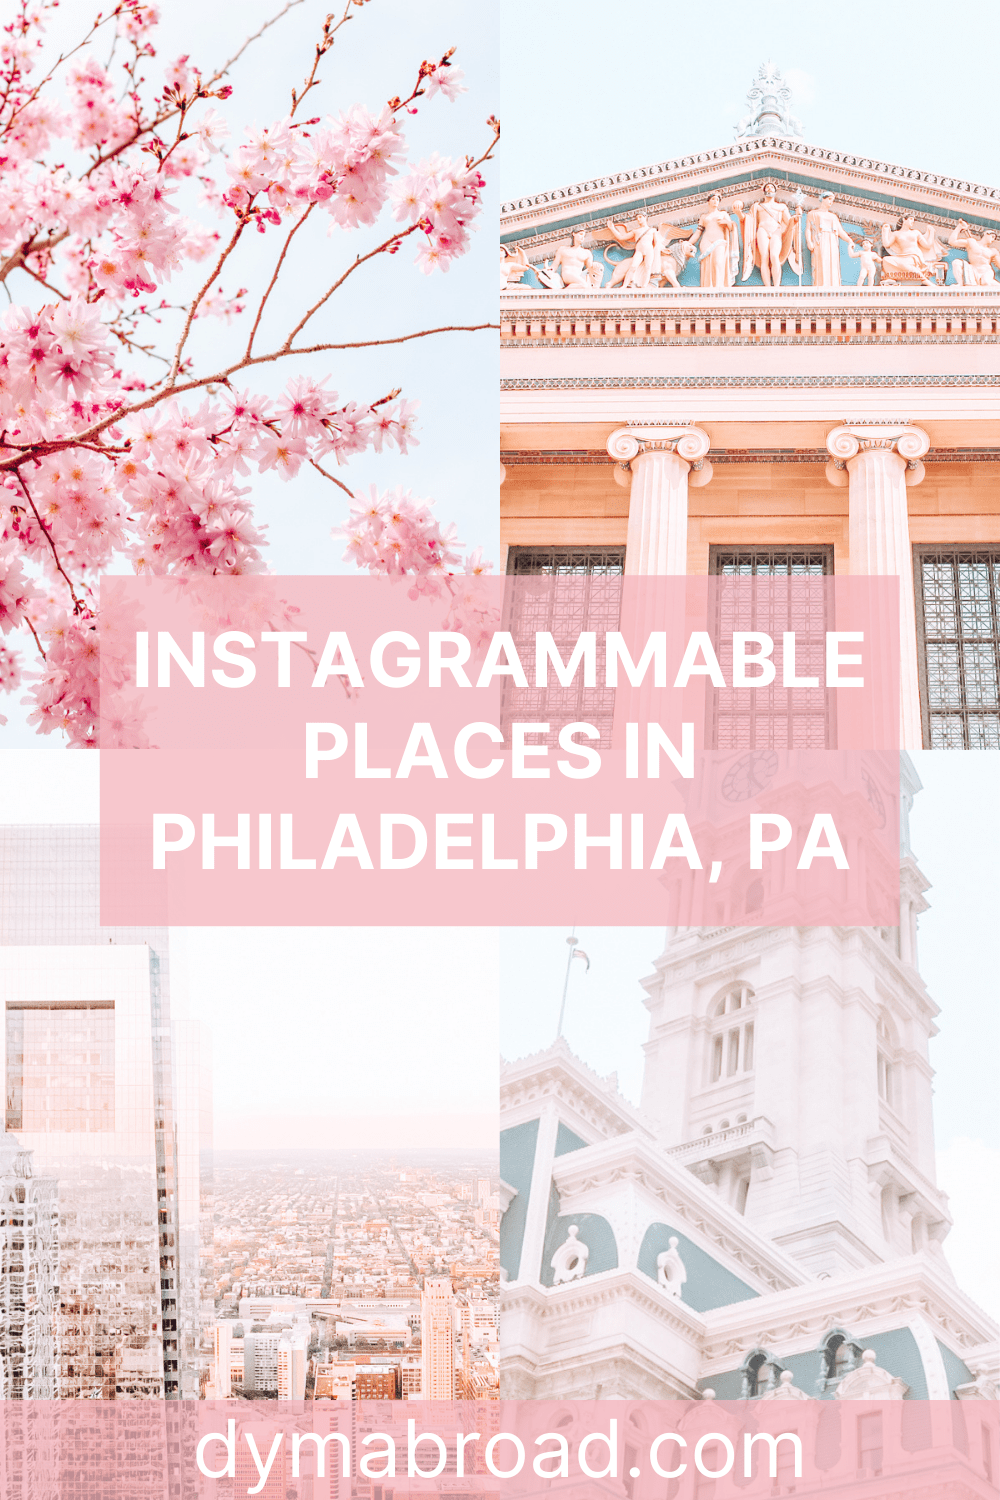 Instagrammable places in Philadelphia Pinterest image